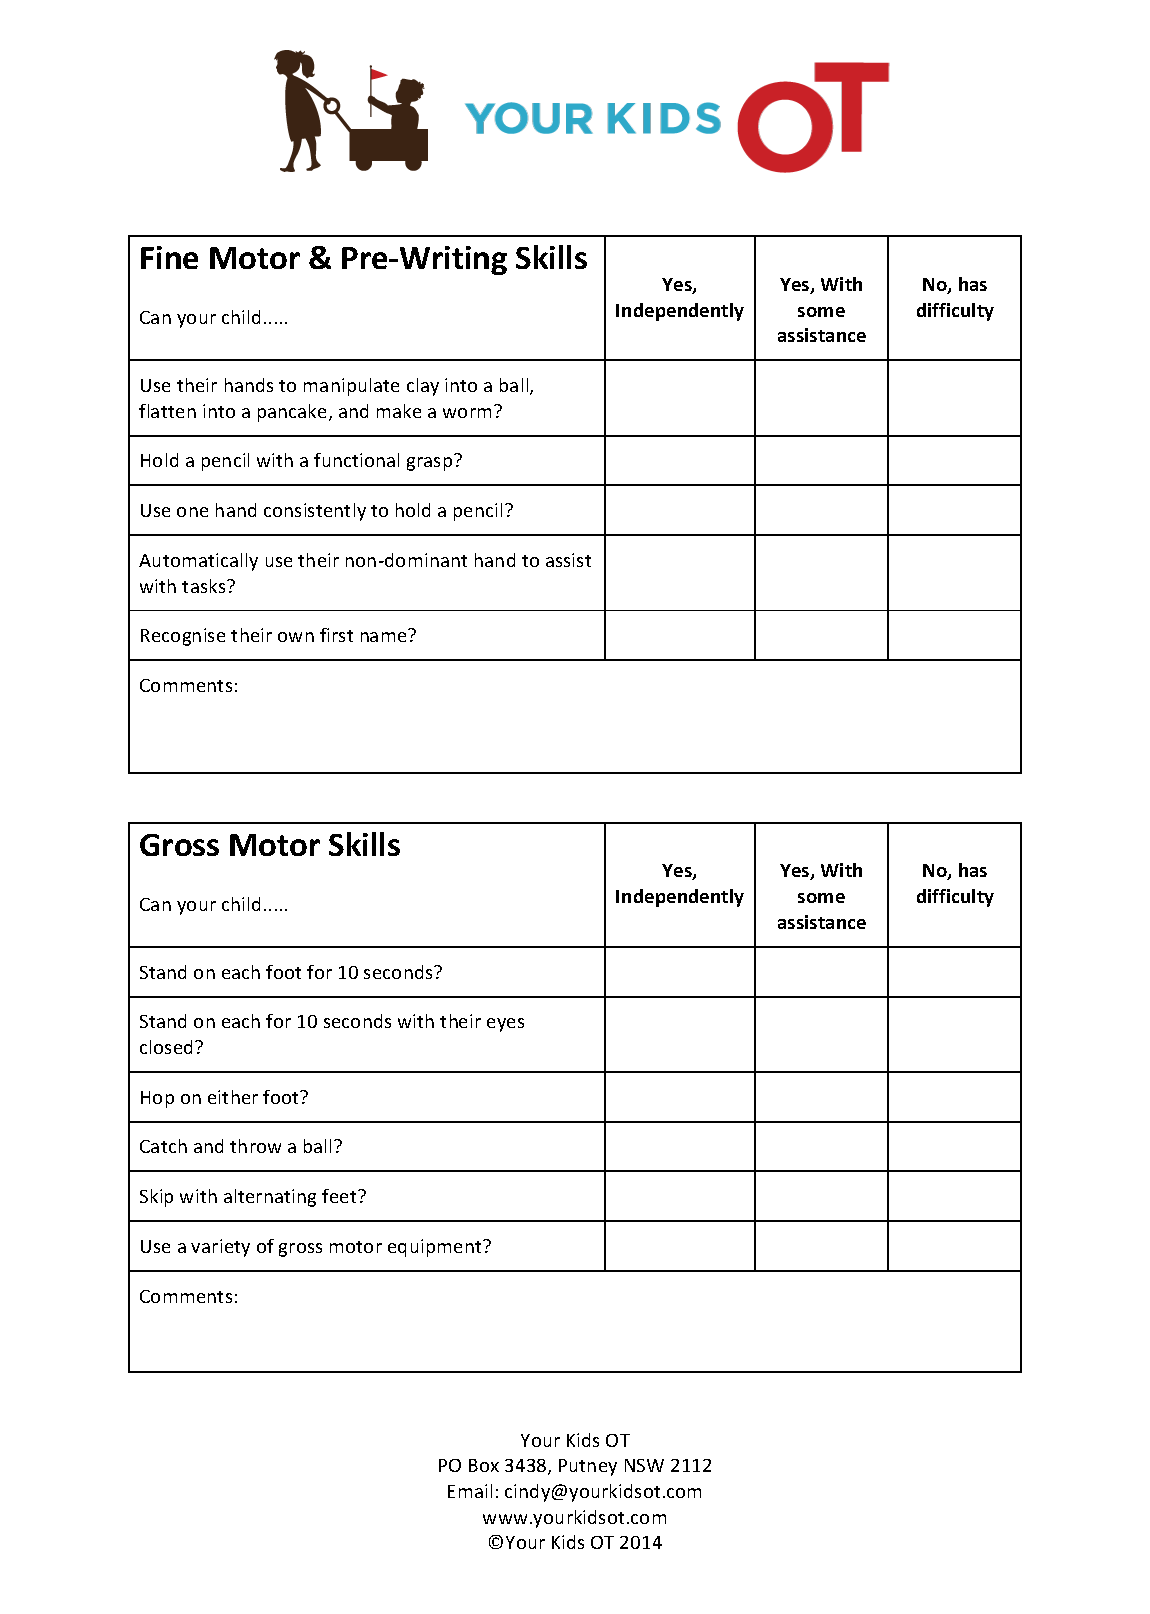 photo regarding Kindergarten Readiness Checklist Printable known as No cost College or university Readiness List